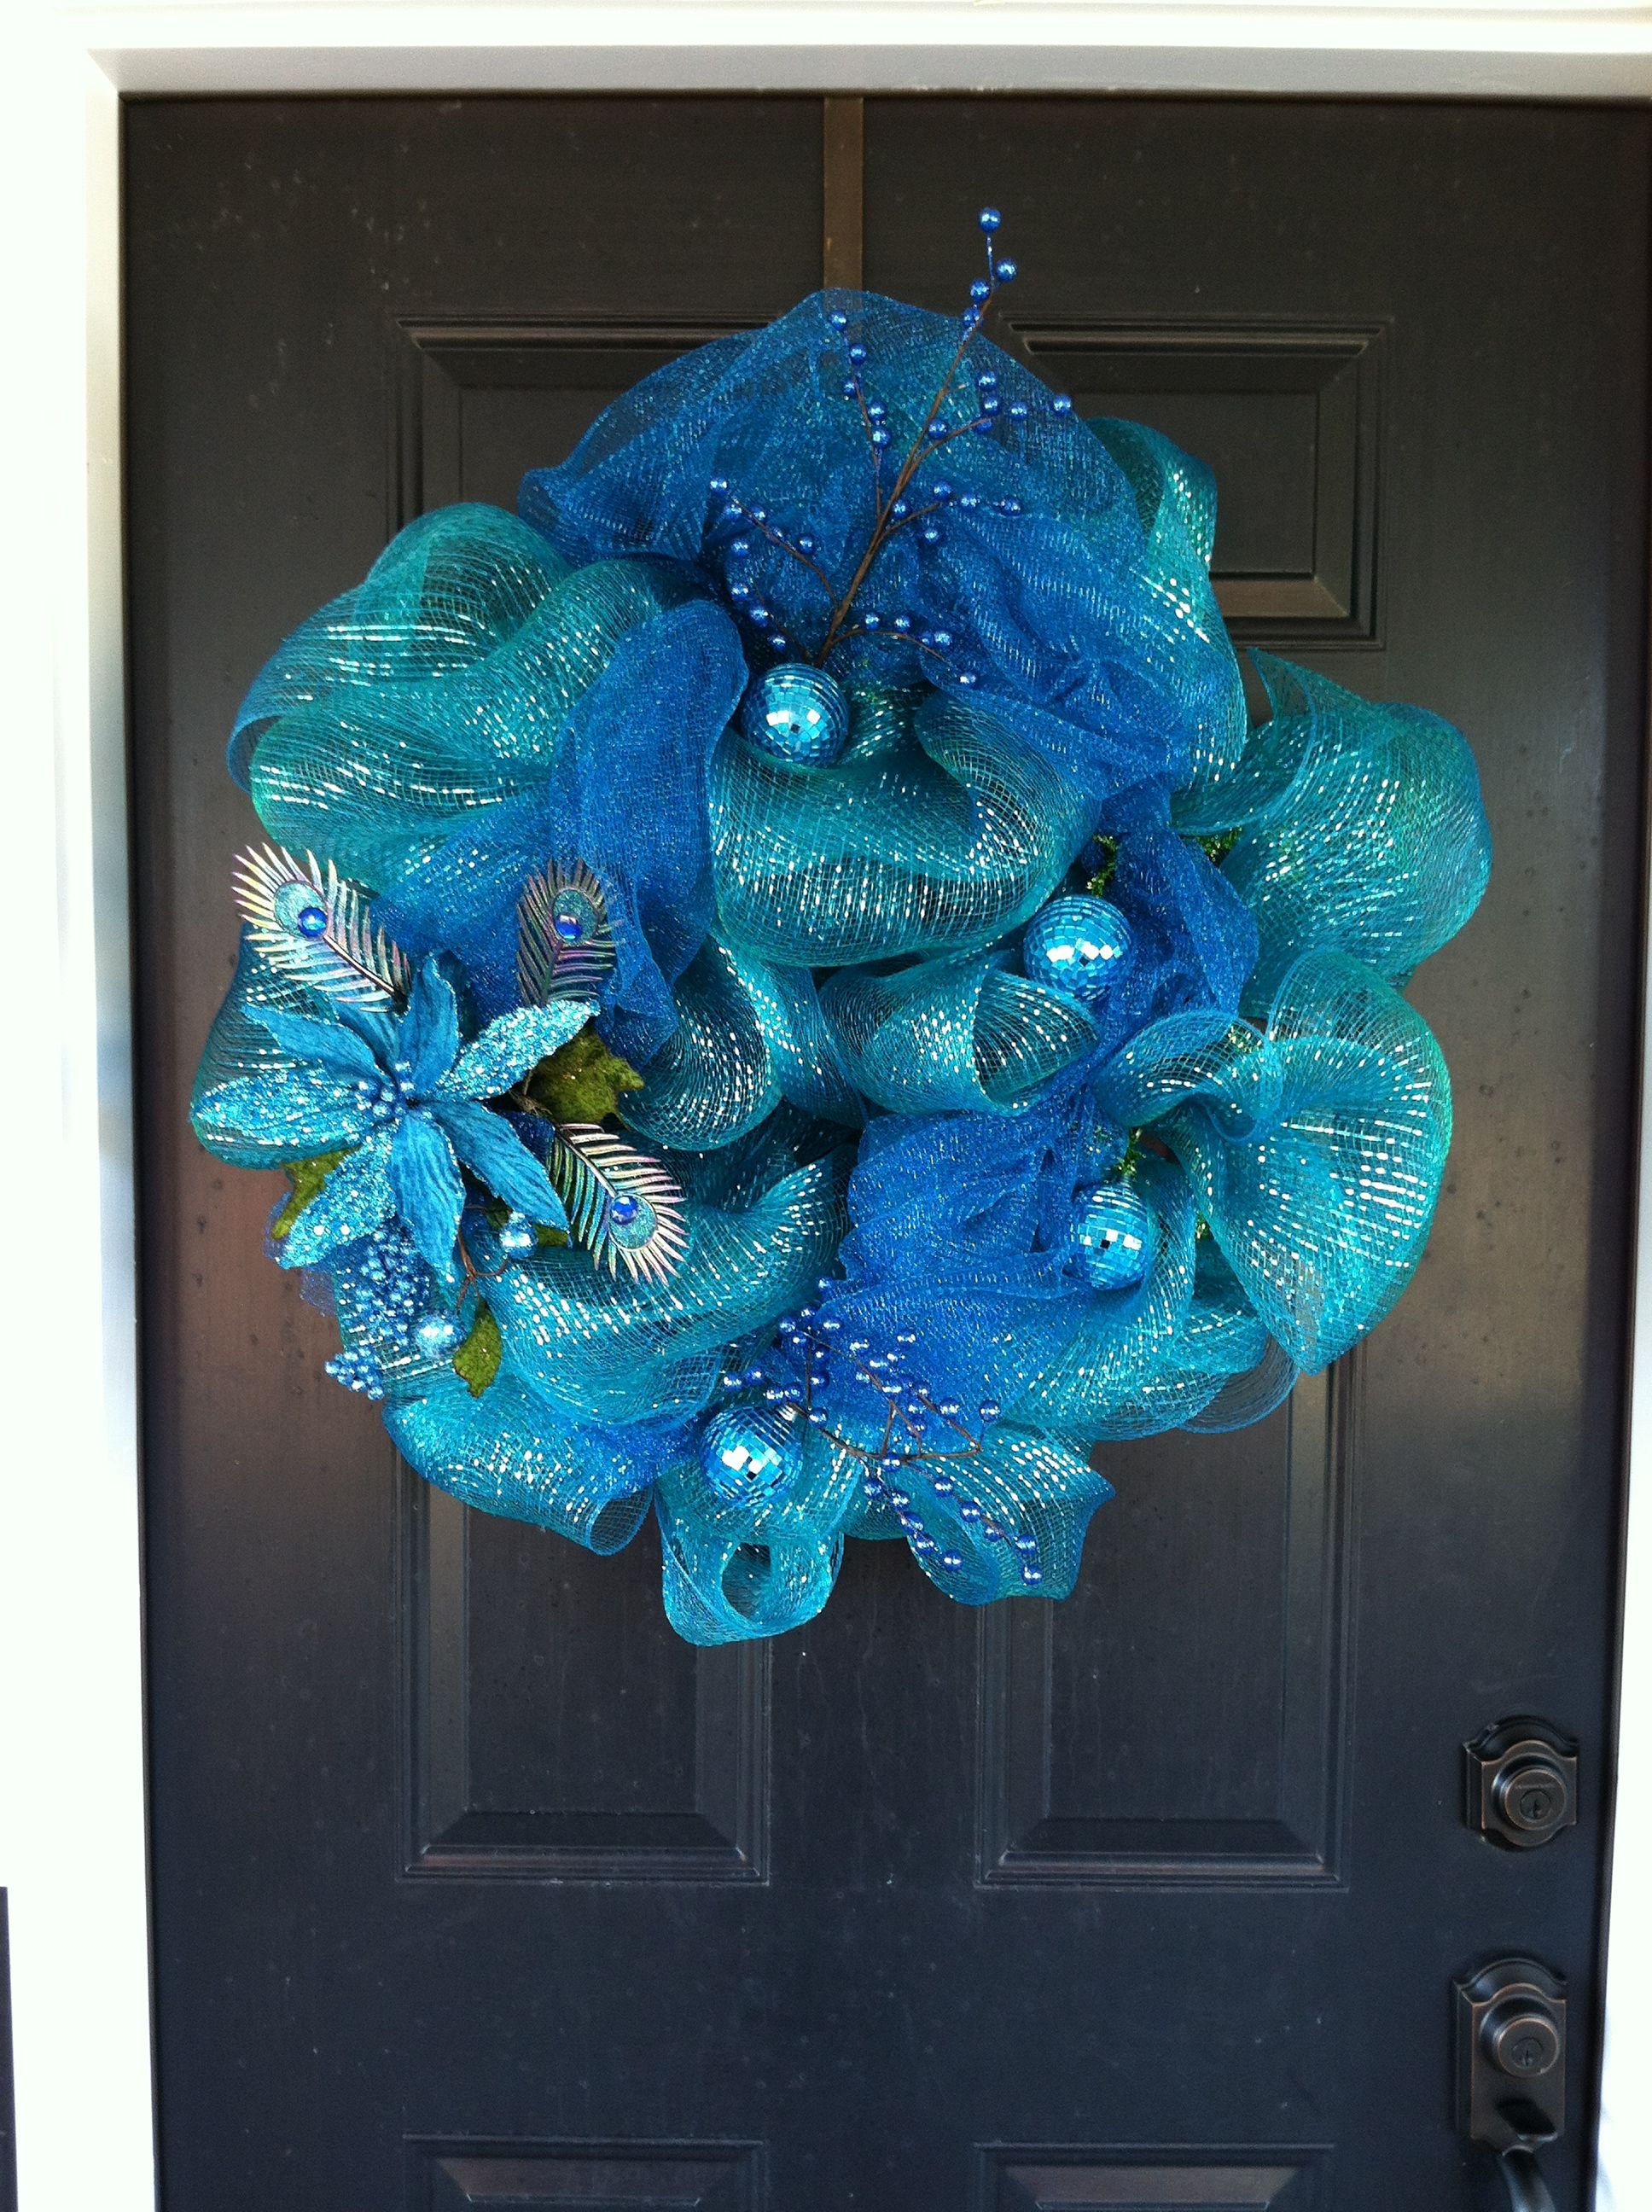 Peacock inspired Christmas wreath made with 1 roll of deco mesh and 1 roll of mesh garland.